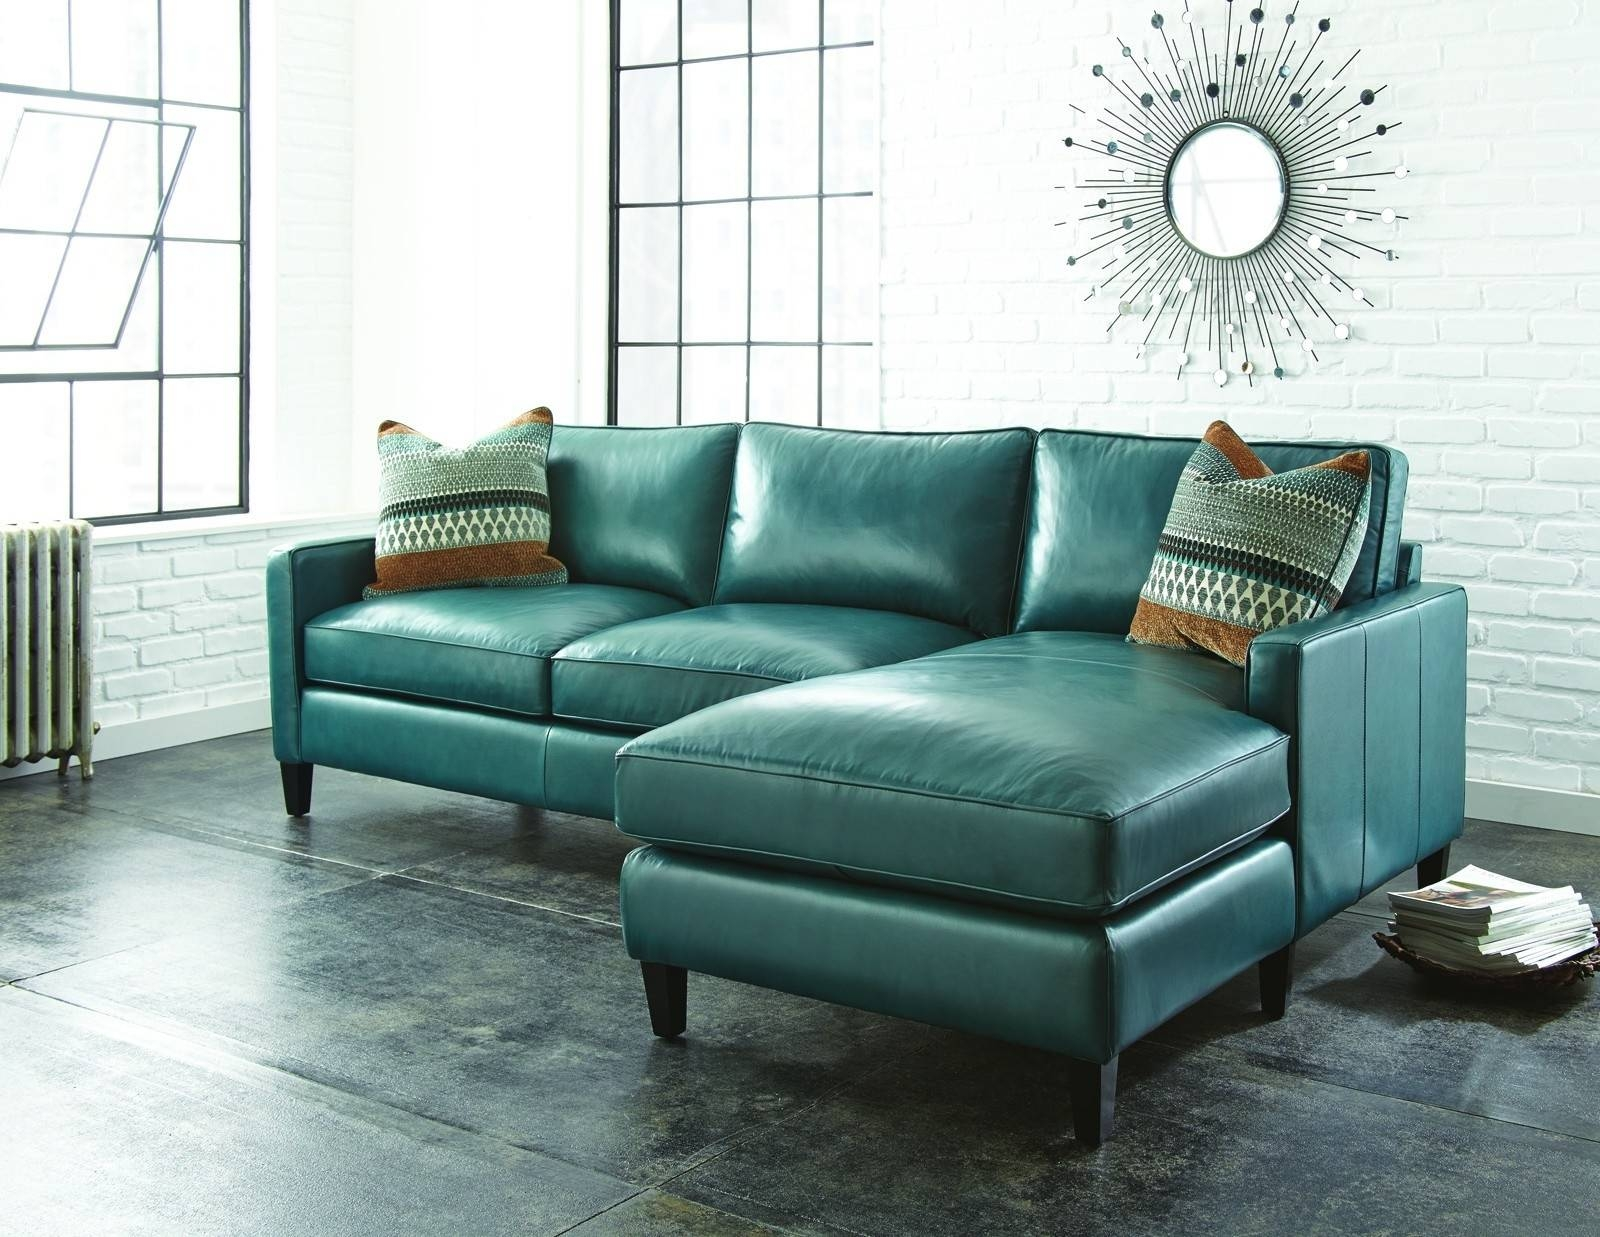 Sofas Center : Excellent Green Sectional Sofa Photos Inspirations pertaining to Green Sectional Sofa (Image 28 of 30)